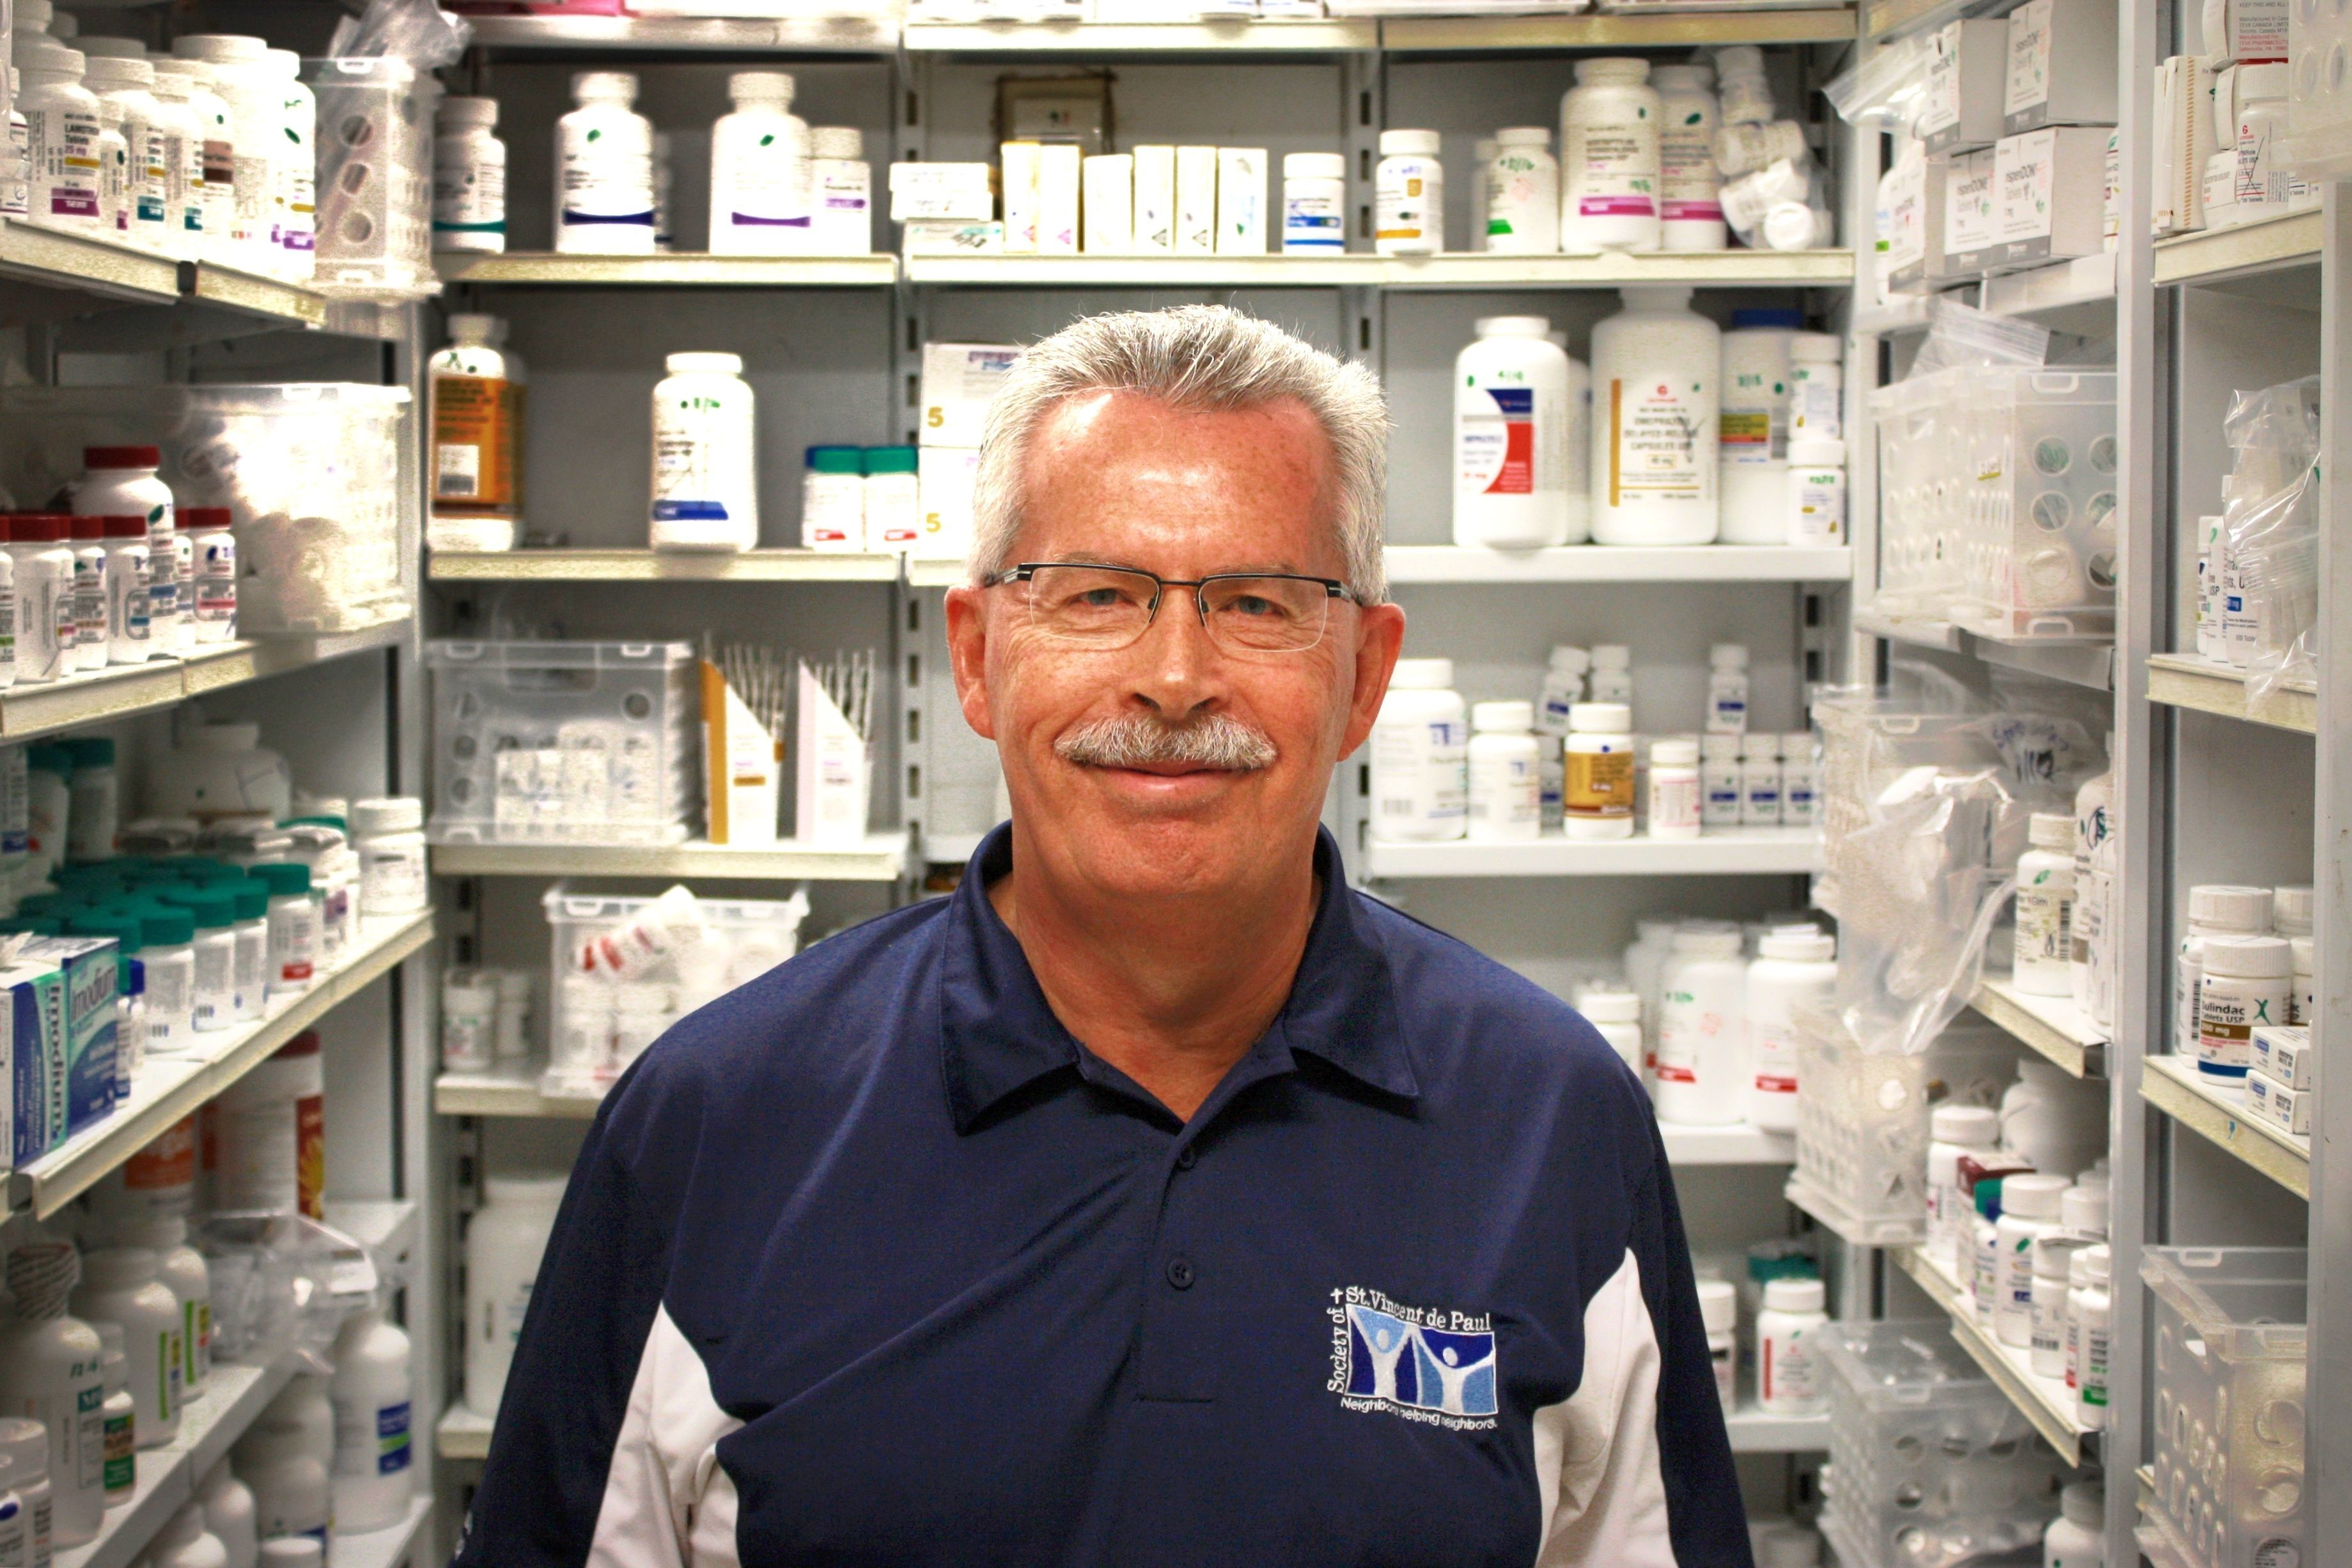 LOCAL PHARMACIST RECOGNIZED AS 2020 FREE CLINIC PHARMACIST OF THE YEAR AT OHIO FREE CLINIC APPRECIATION AWARDS